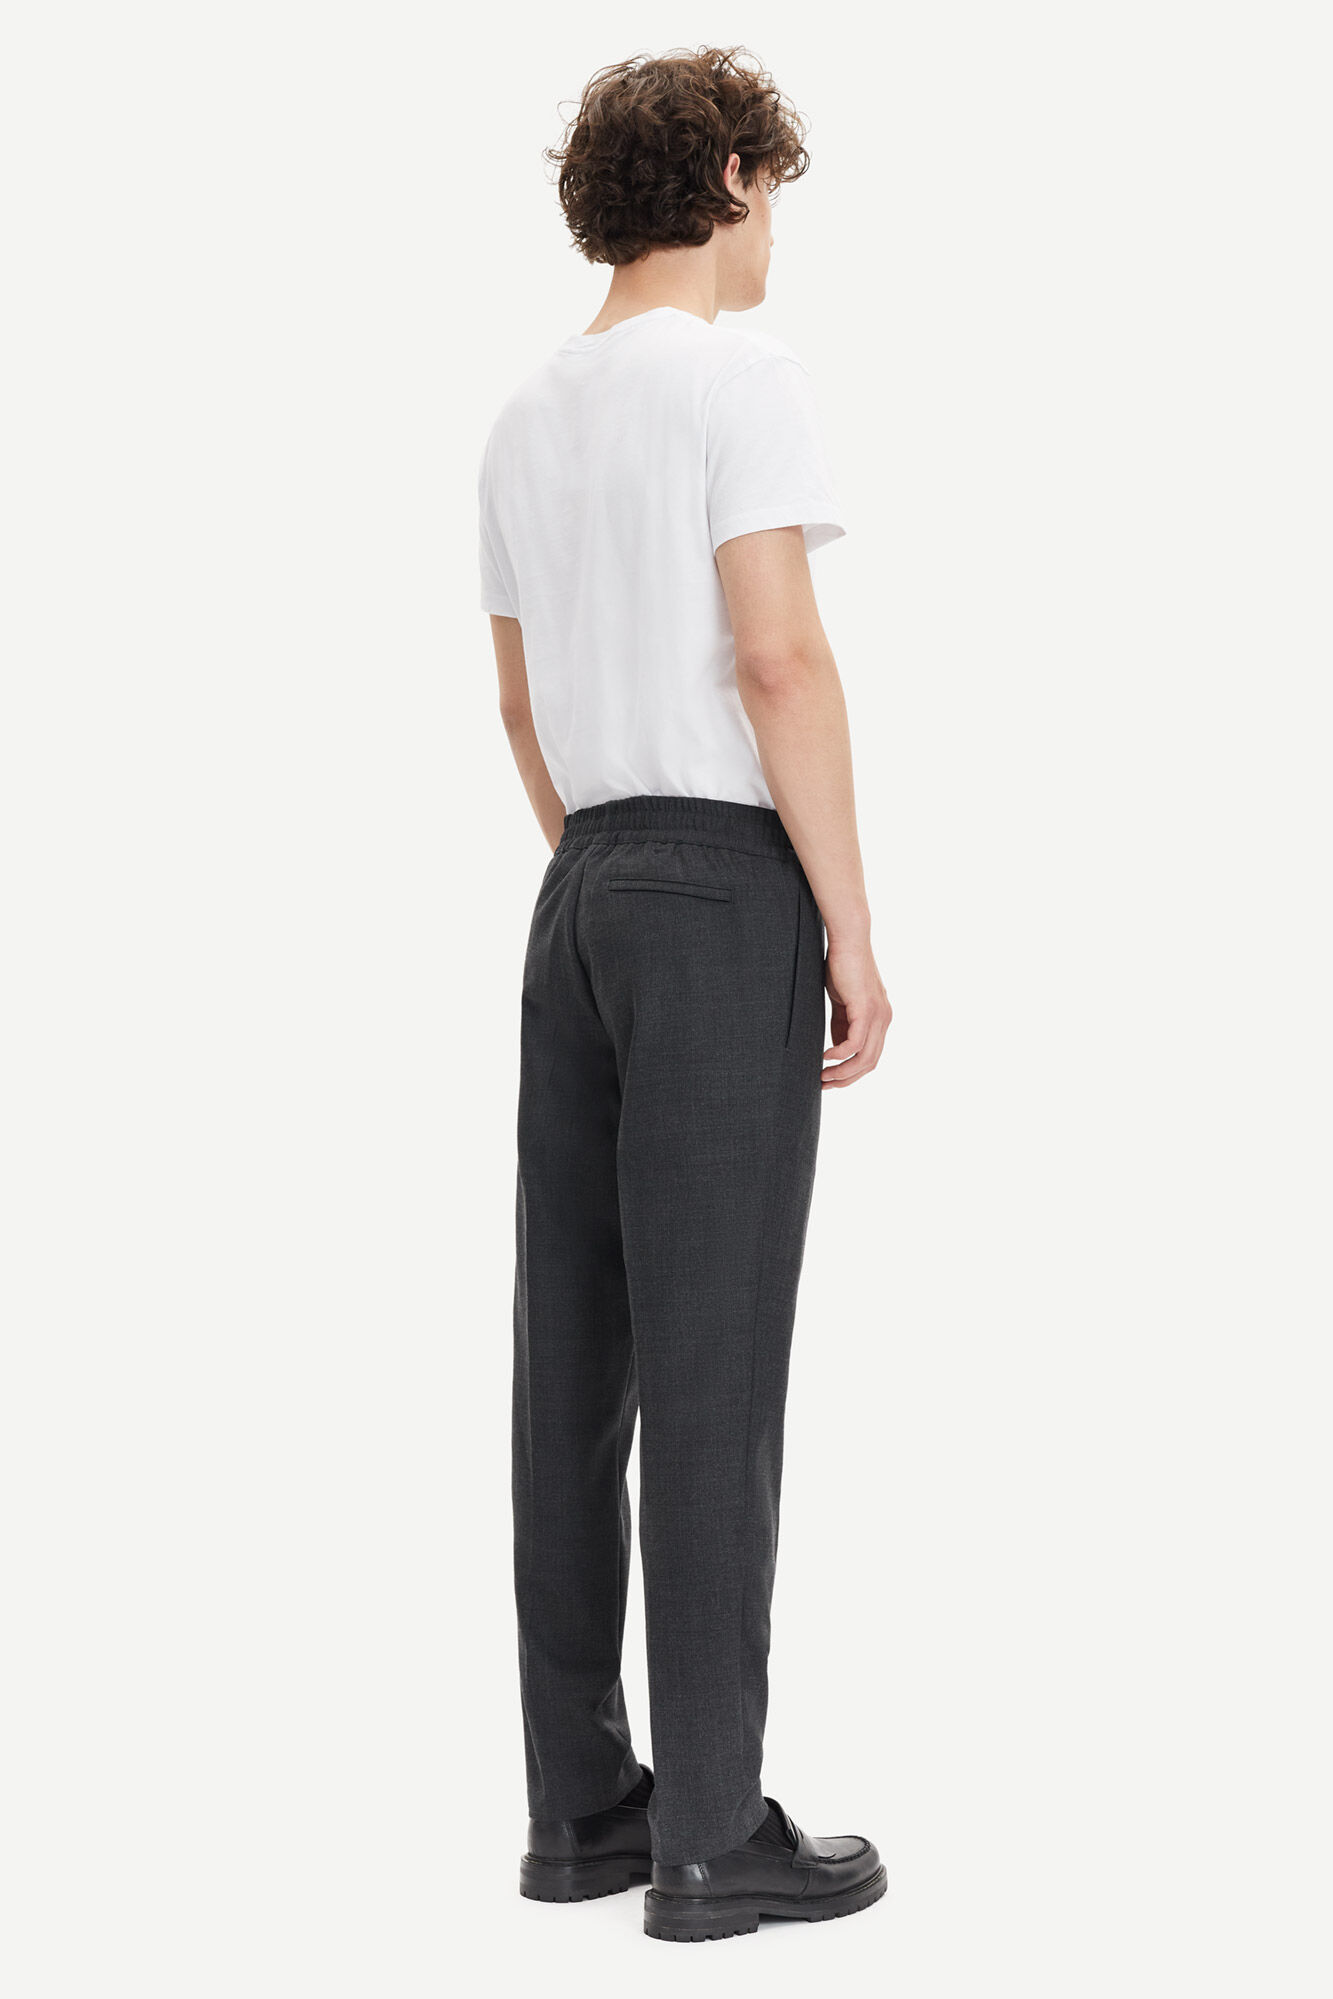 Smithy trousers 11738